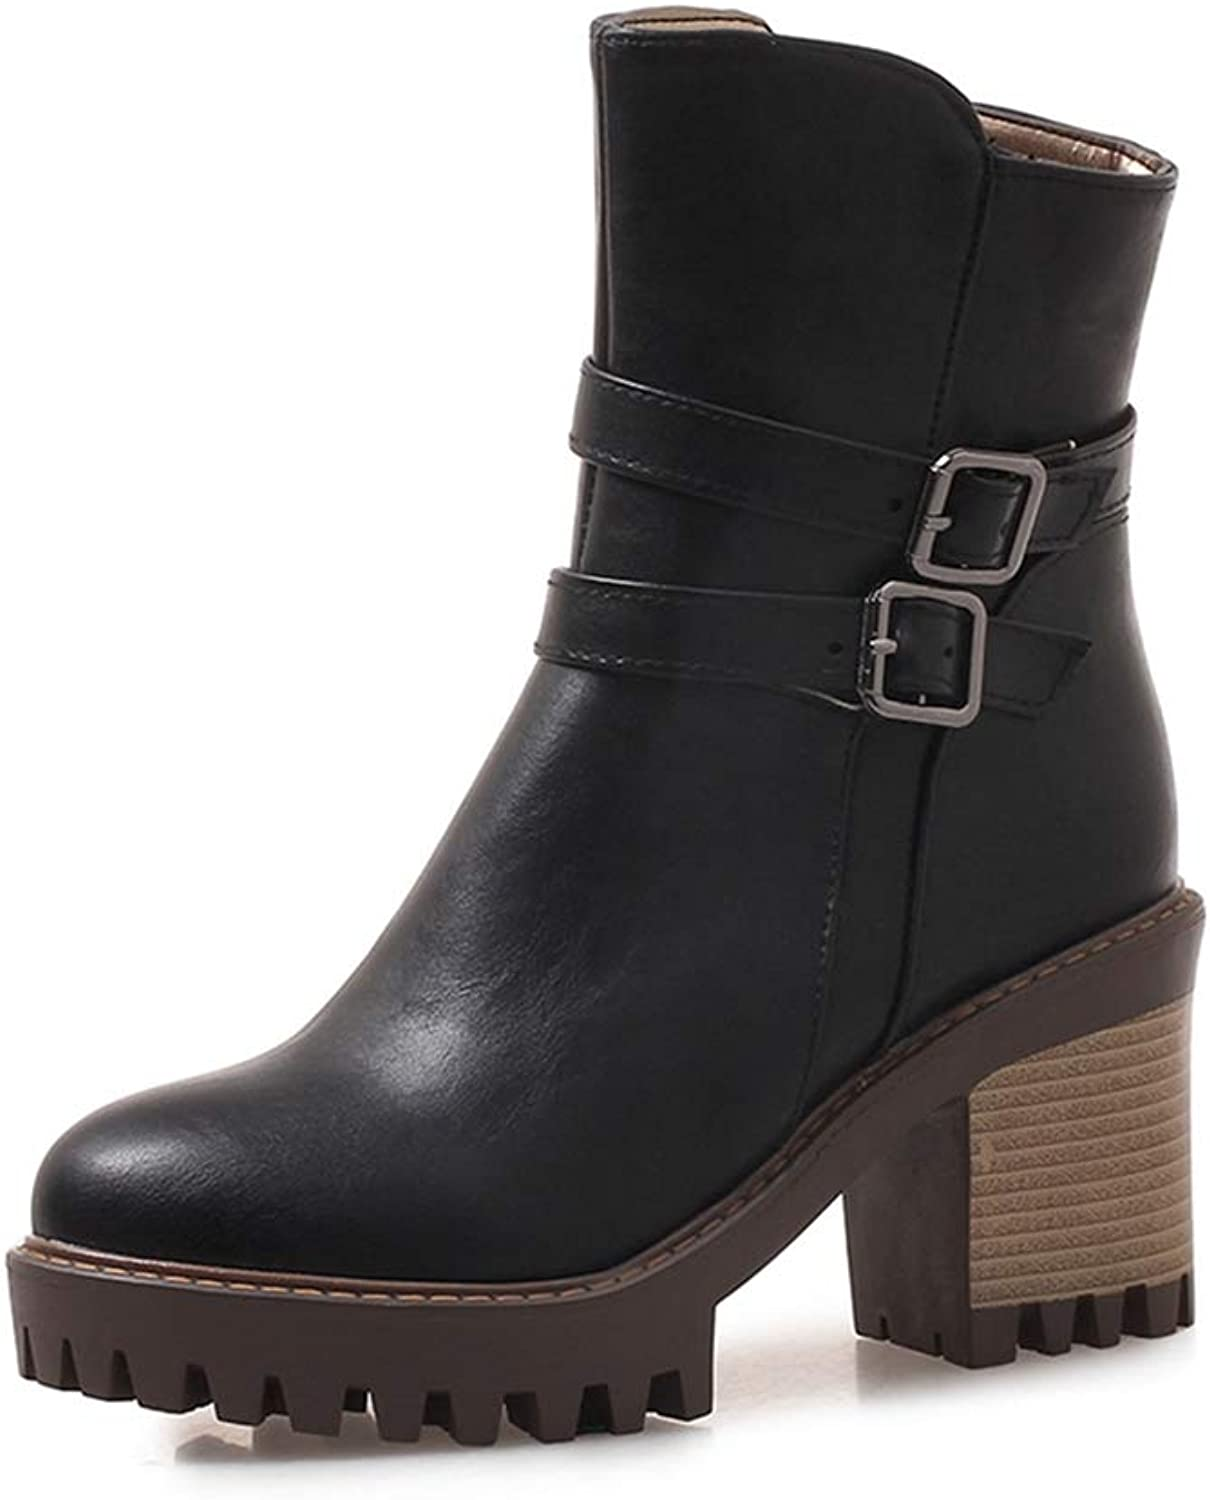 T-JULY New Solid Wide High Heels Zip Belt Buckle shoes for Women Casual Winter Mid Calf Boots Large Size 33-43